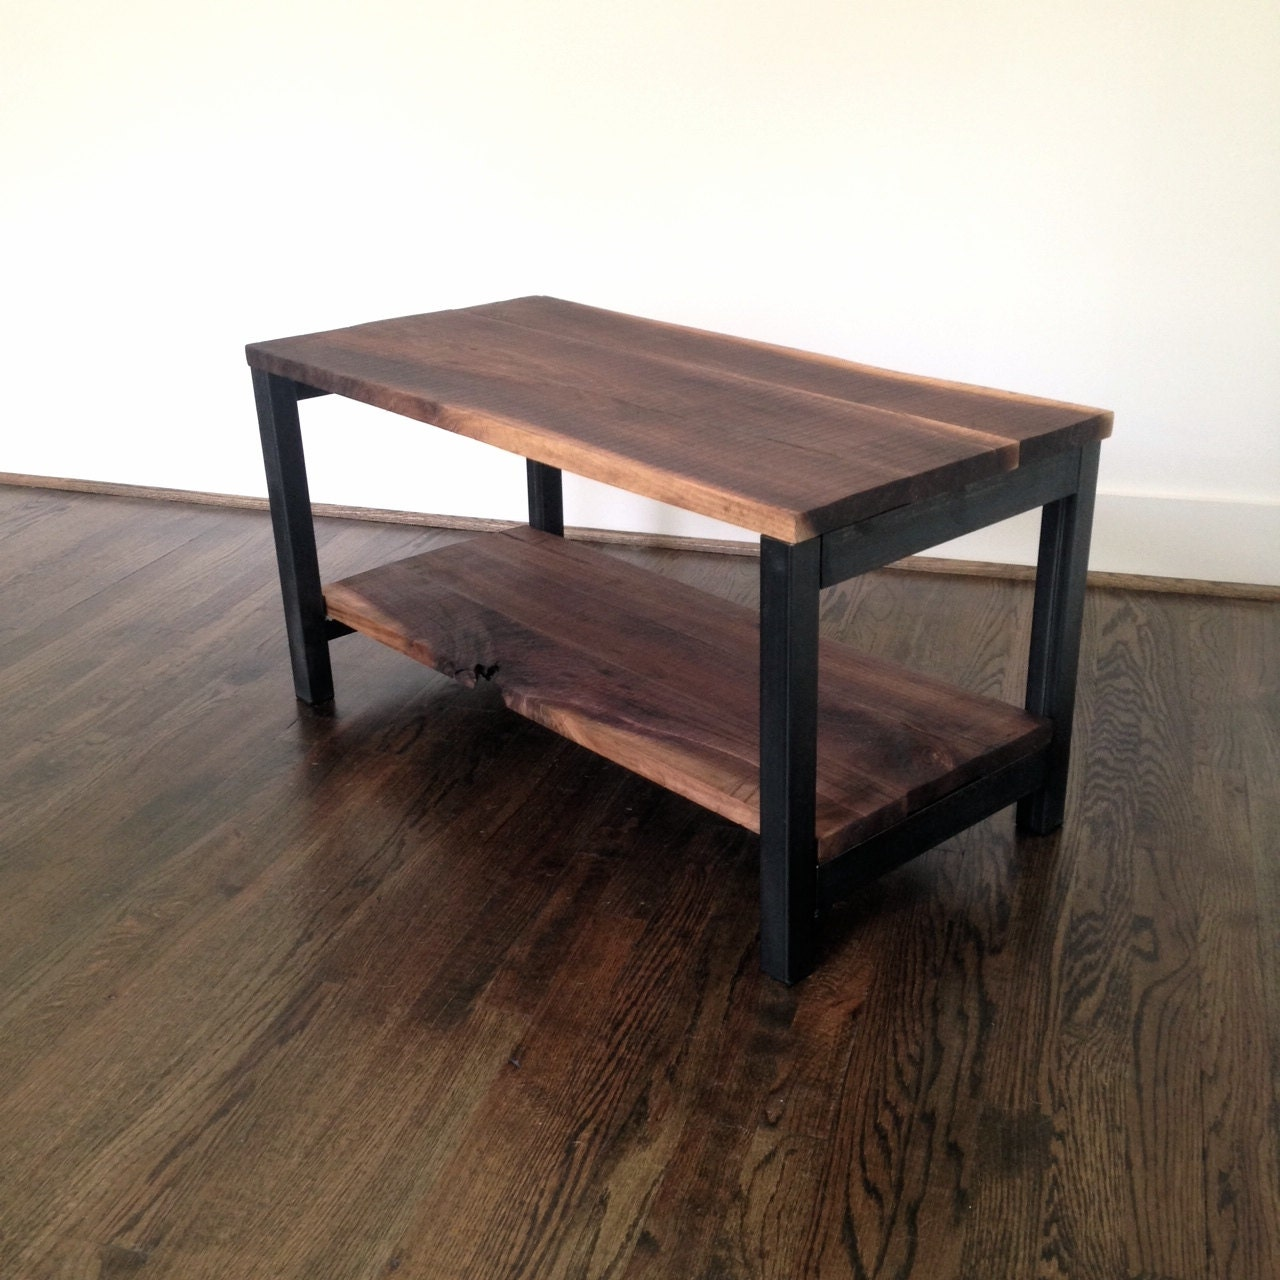 The Paloma Coffee Table Reclaimed Wood & Steel